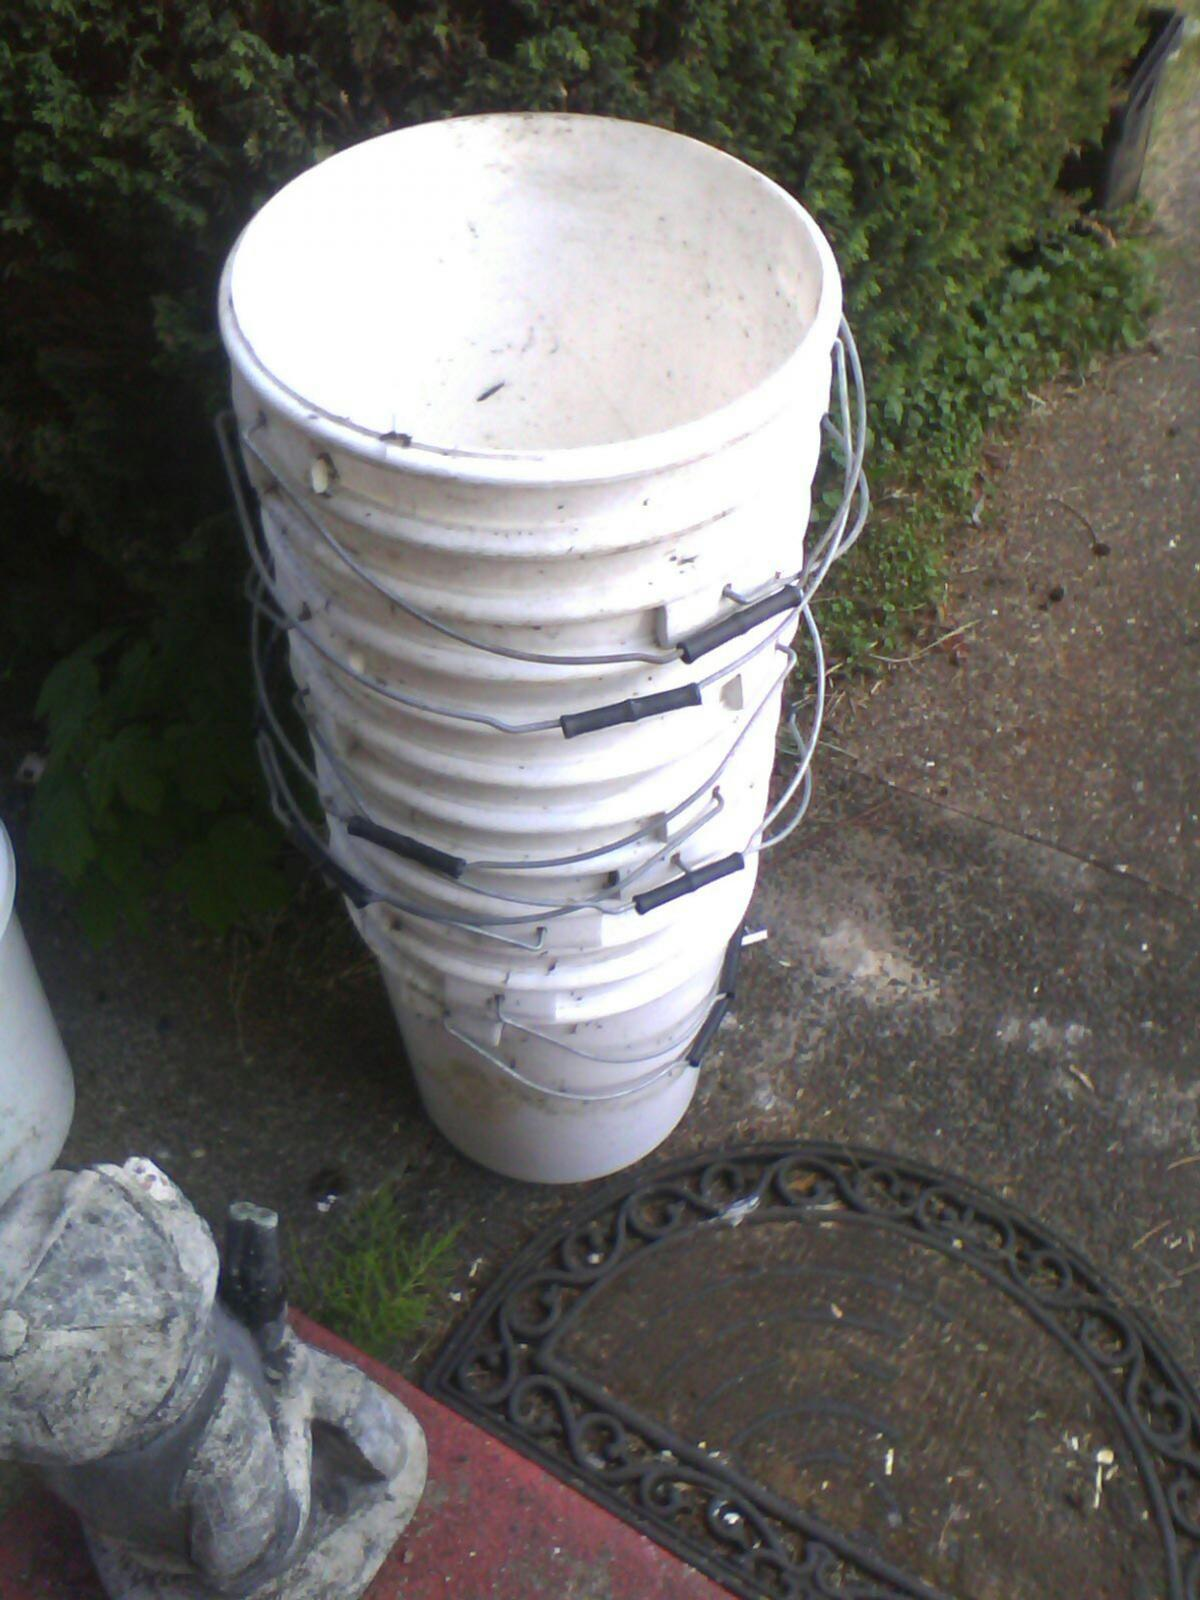 plastic buckets used no lids ok for growing vedg. plastering ect. tel. ,07873476575. collection only ne28 0dy howdon Wallsend. fifty pence each.